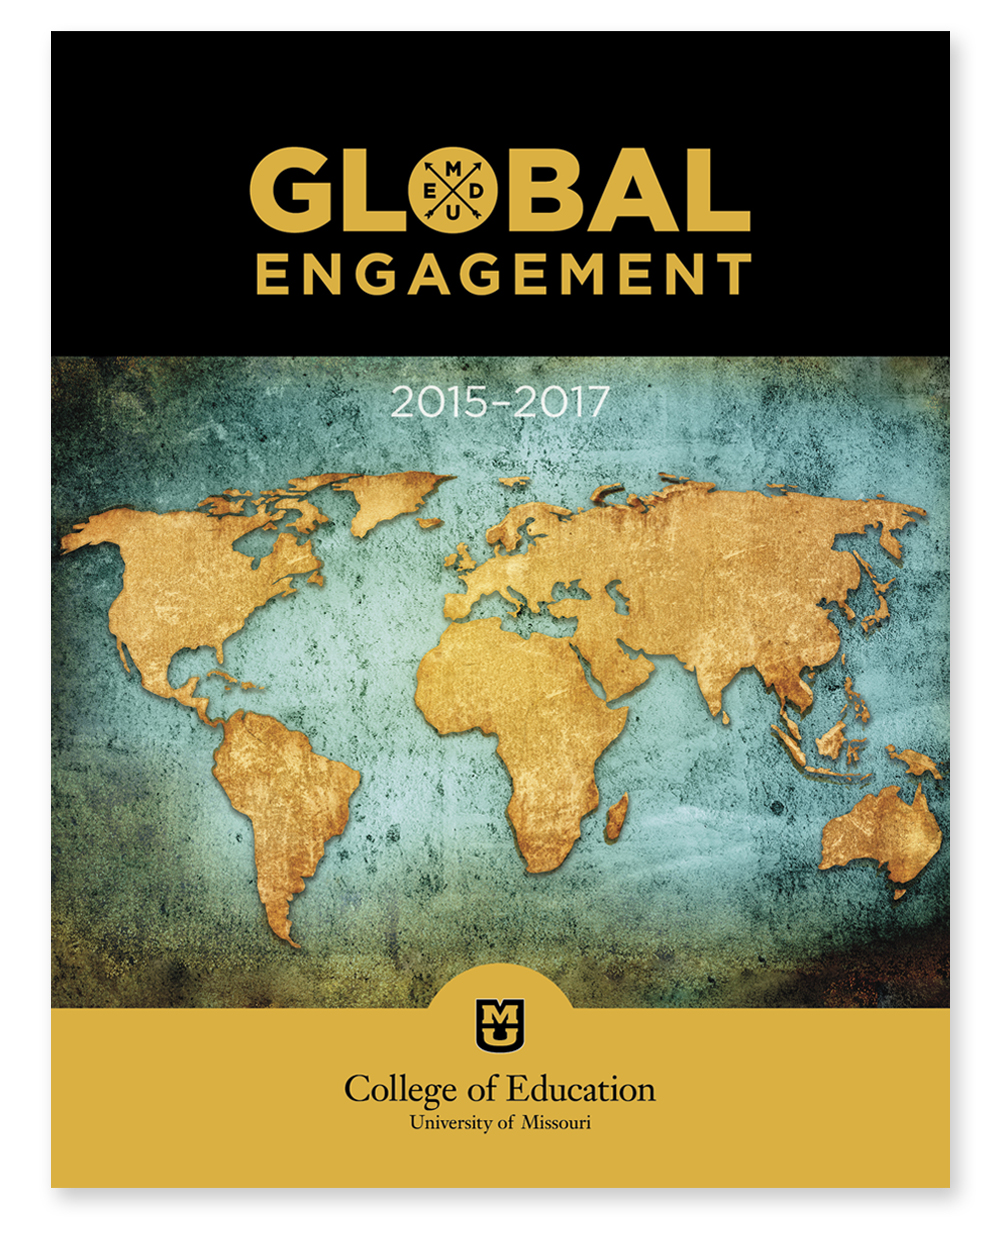 University of Missouri College of Education Global Engagement Report 2015-2017, front cover